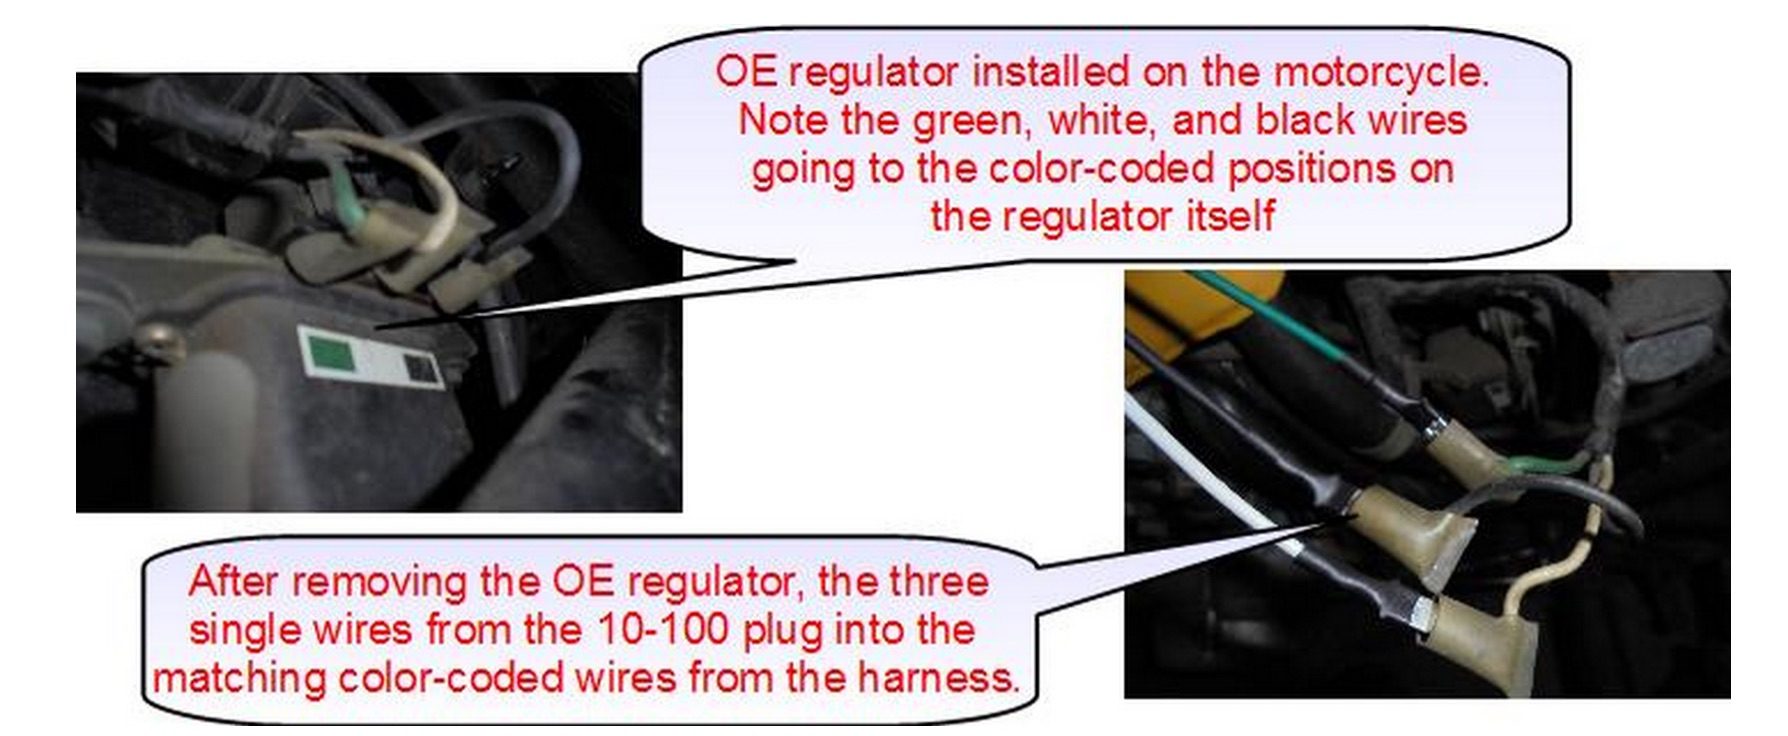 Wiring Harness Connect Colors Aftermarket Honda Regulator Rectifier Oem Style Replacement Part Connecting The Disconnect 6 Position 5 Wire Connector From Oe Plug Identical On 10 100 In Its Place